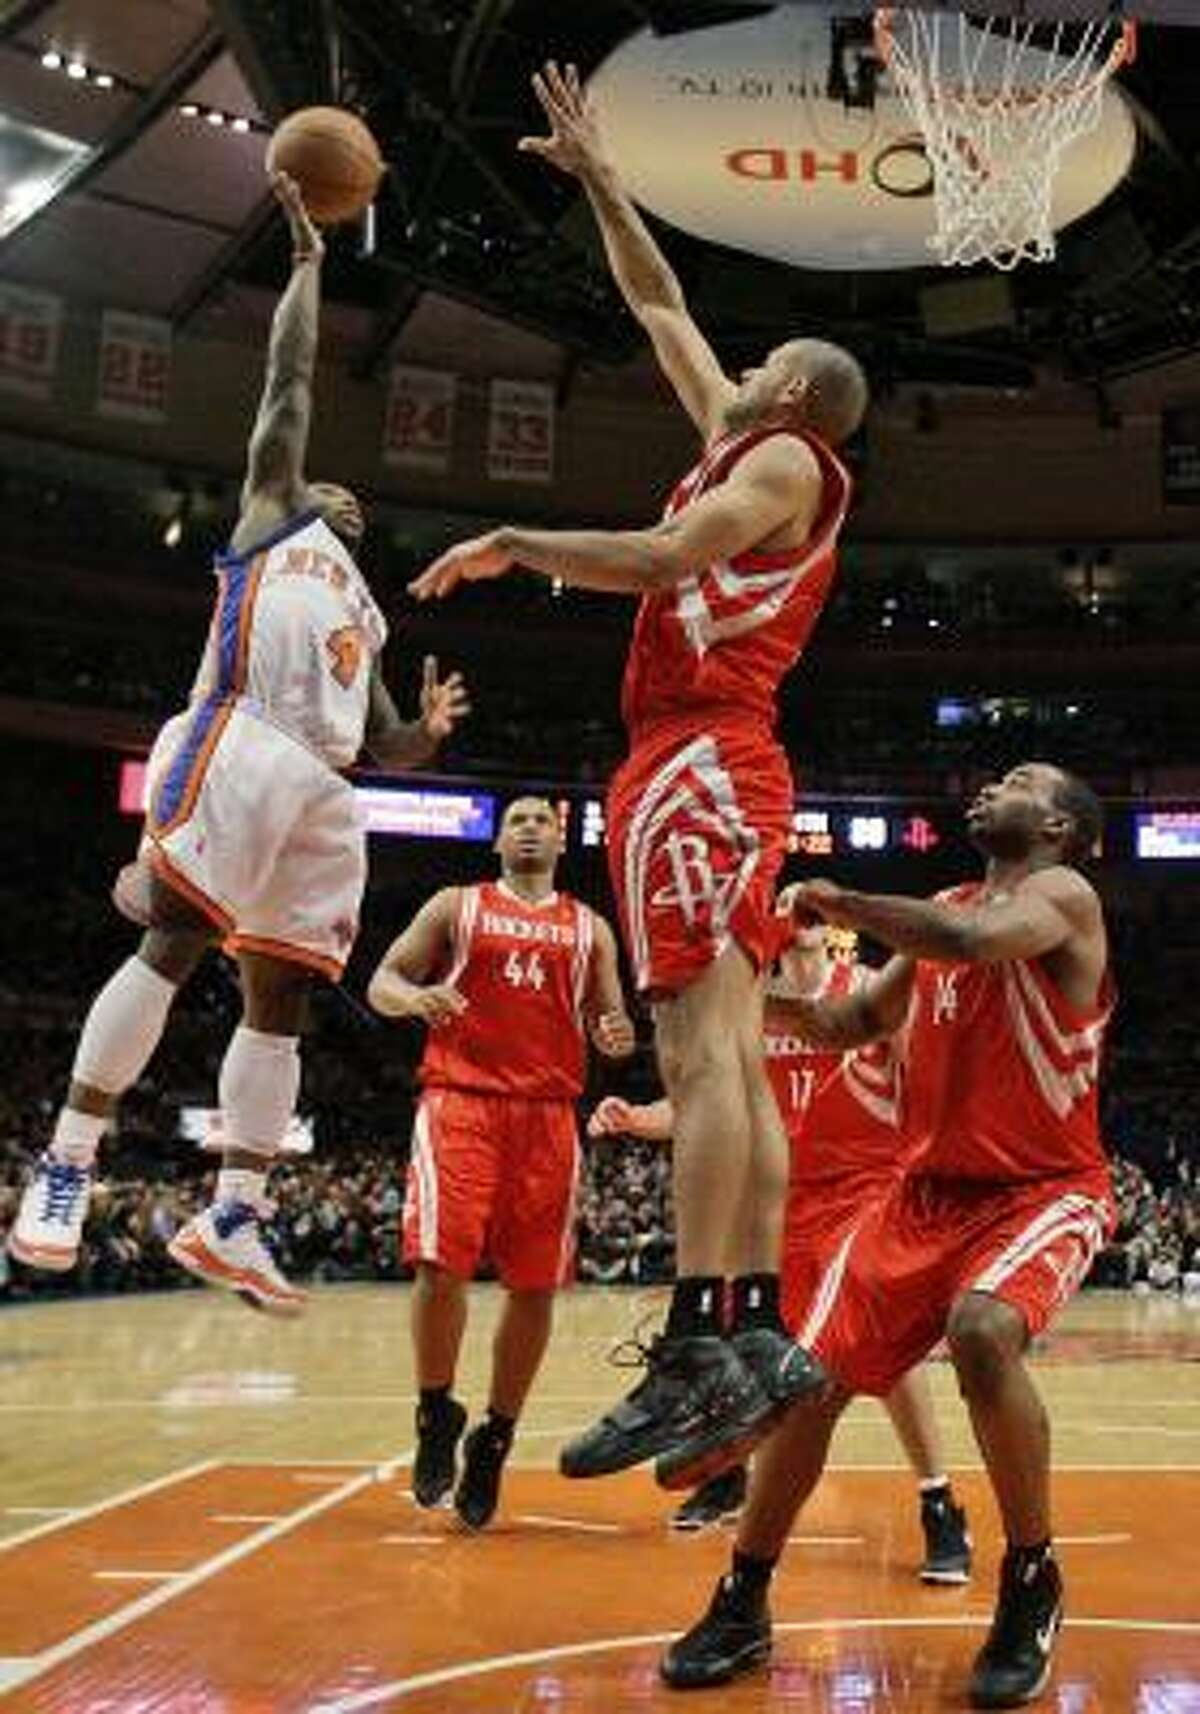 Knicks guard Nate Robinson, right, shoots in the fourth quarter against Shane Battier.